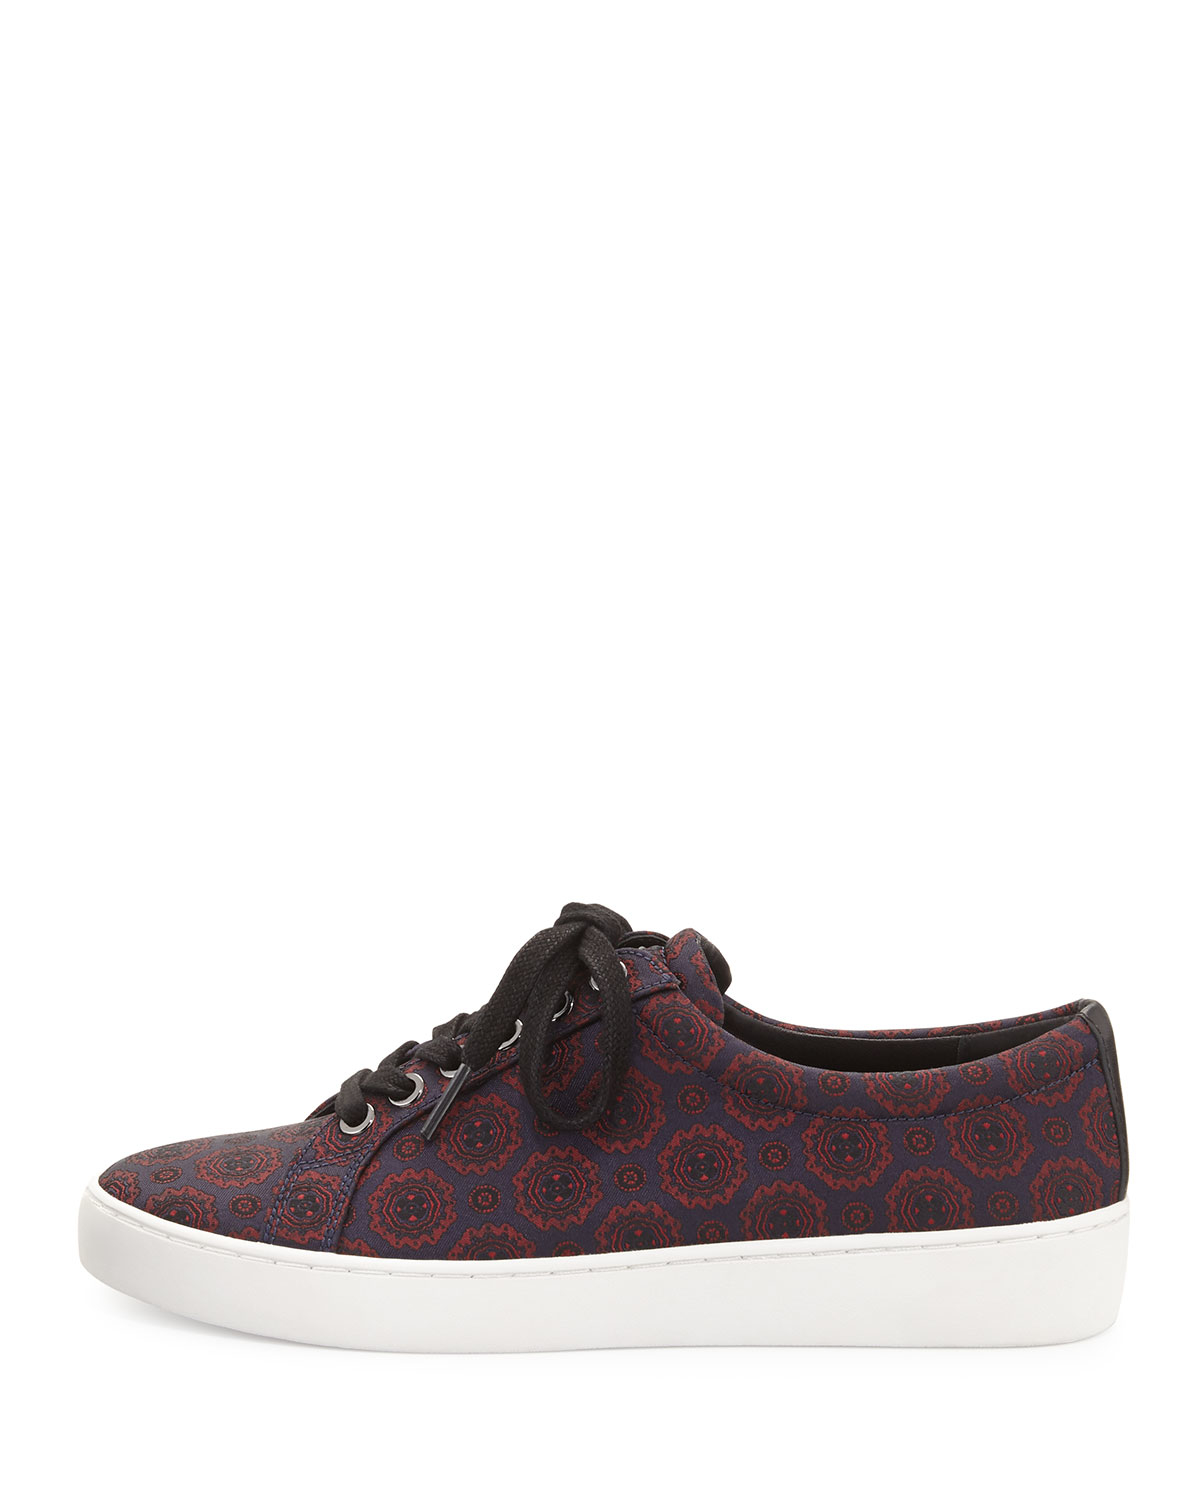 michael kors valin jacquard low top sneaker in blue lyst. Black Bedroom Furniture Sets. Home Design Ideas